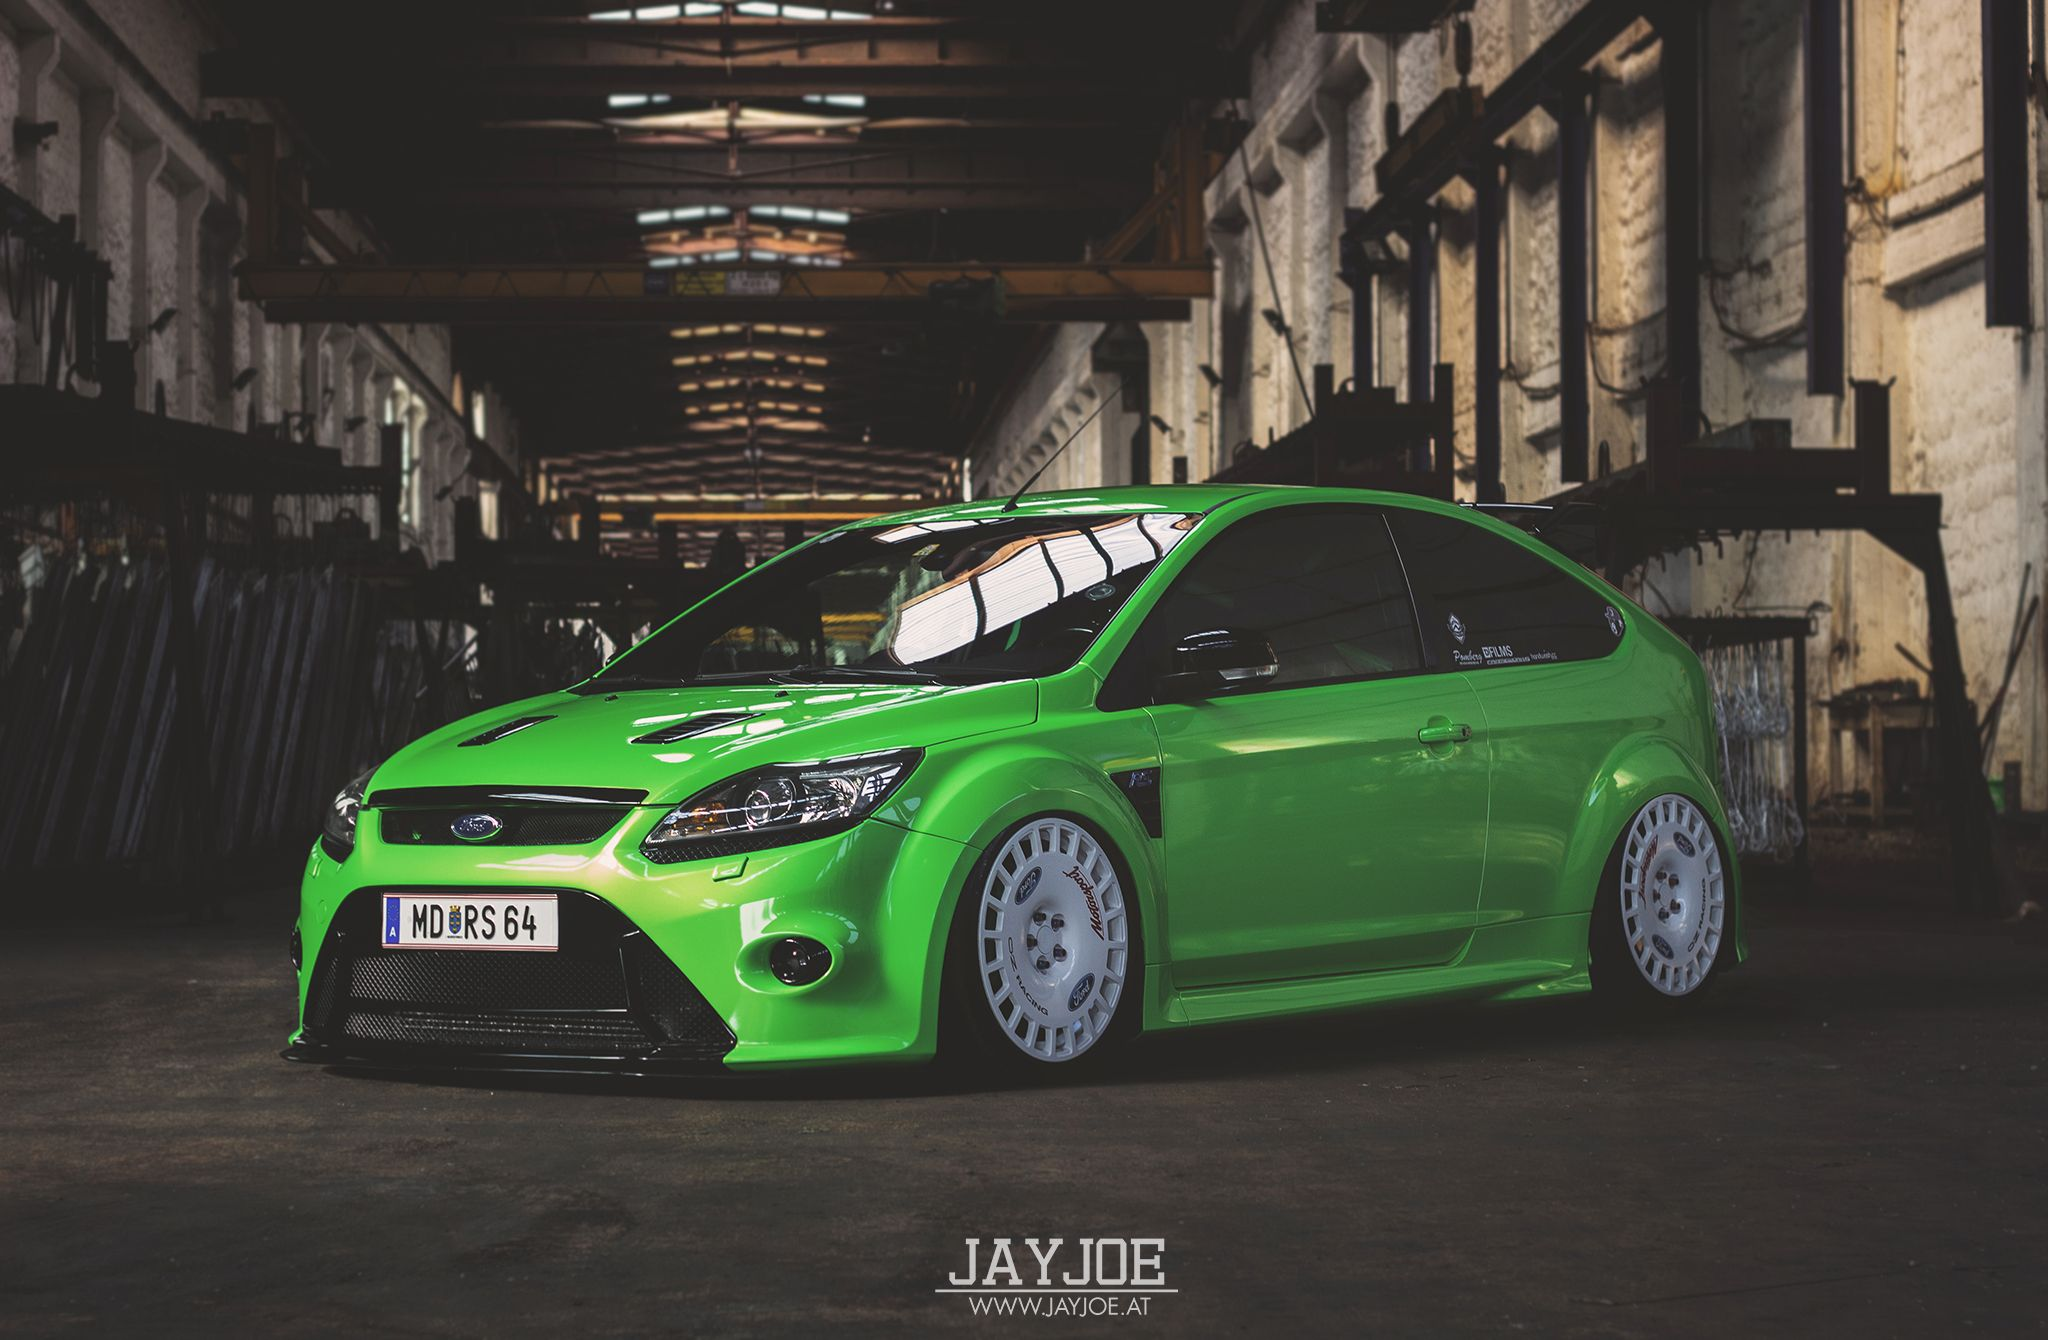 Ford Focus Rs Mk2 With Images Ford Focus Ford Motor Ford